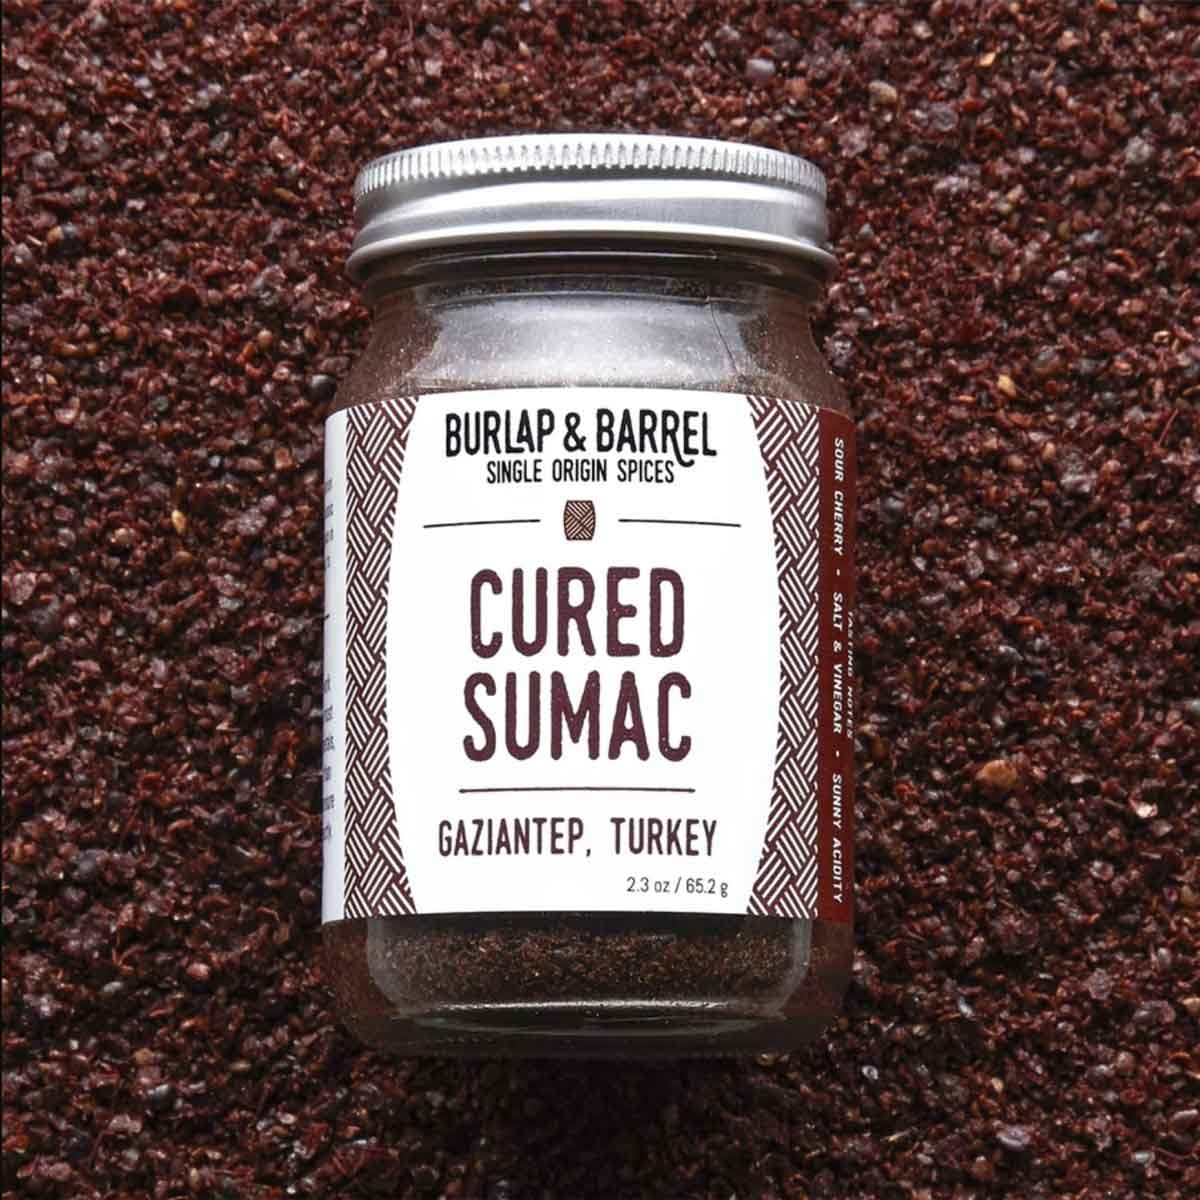 Cured Sumac in jar on bed of sumac.